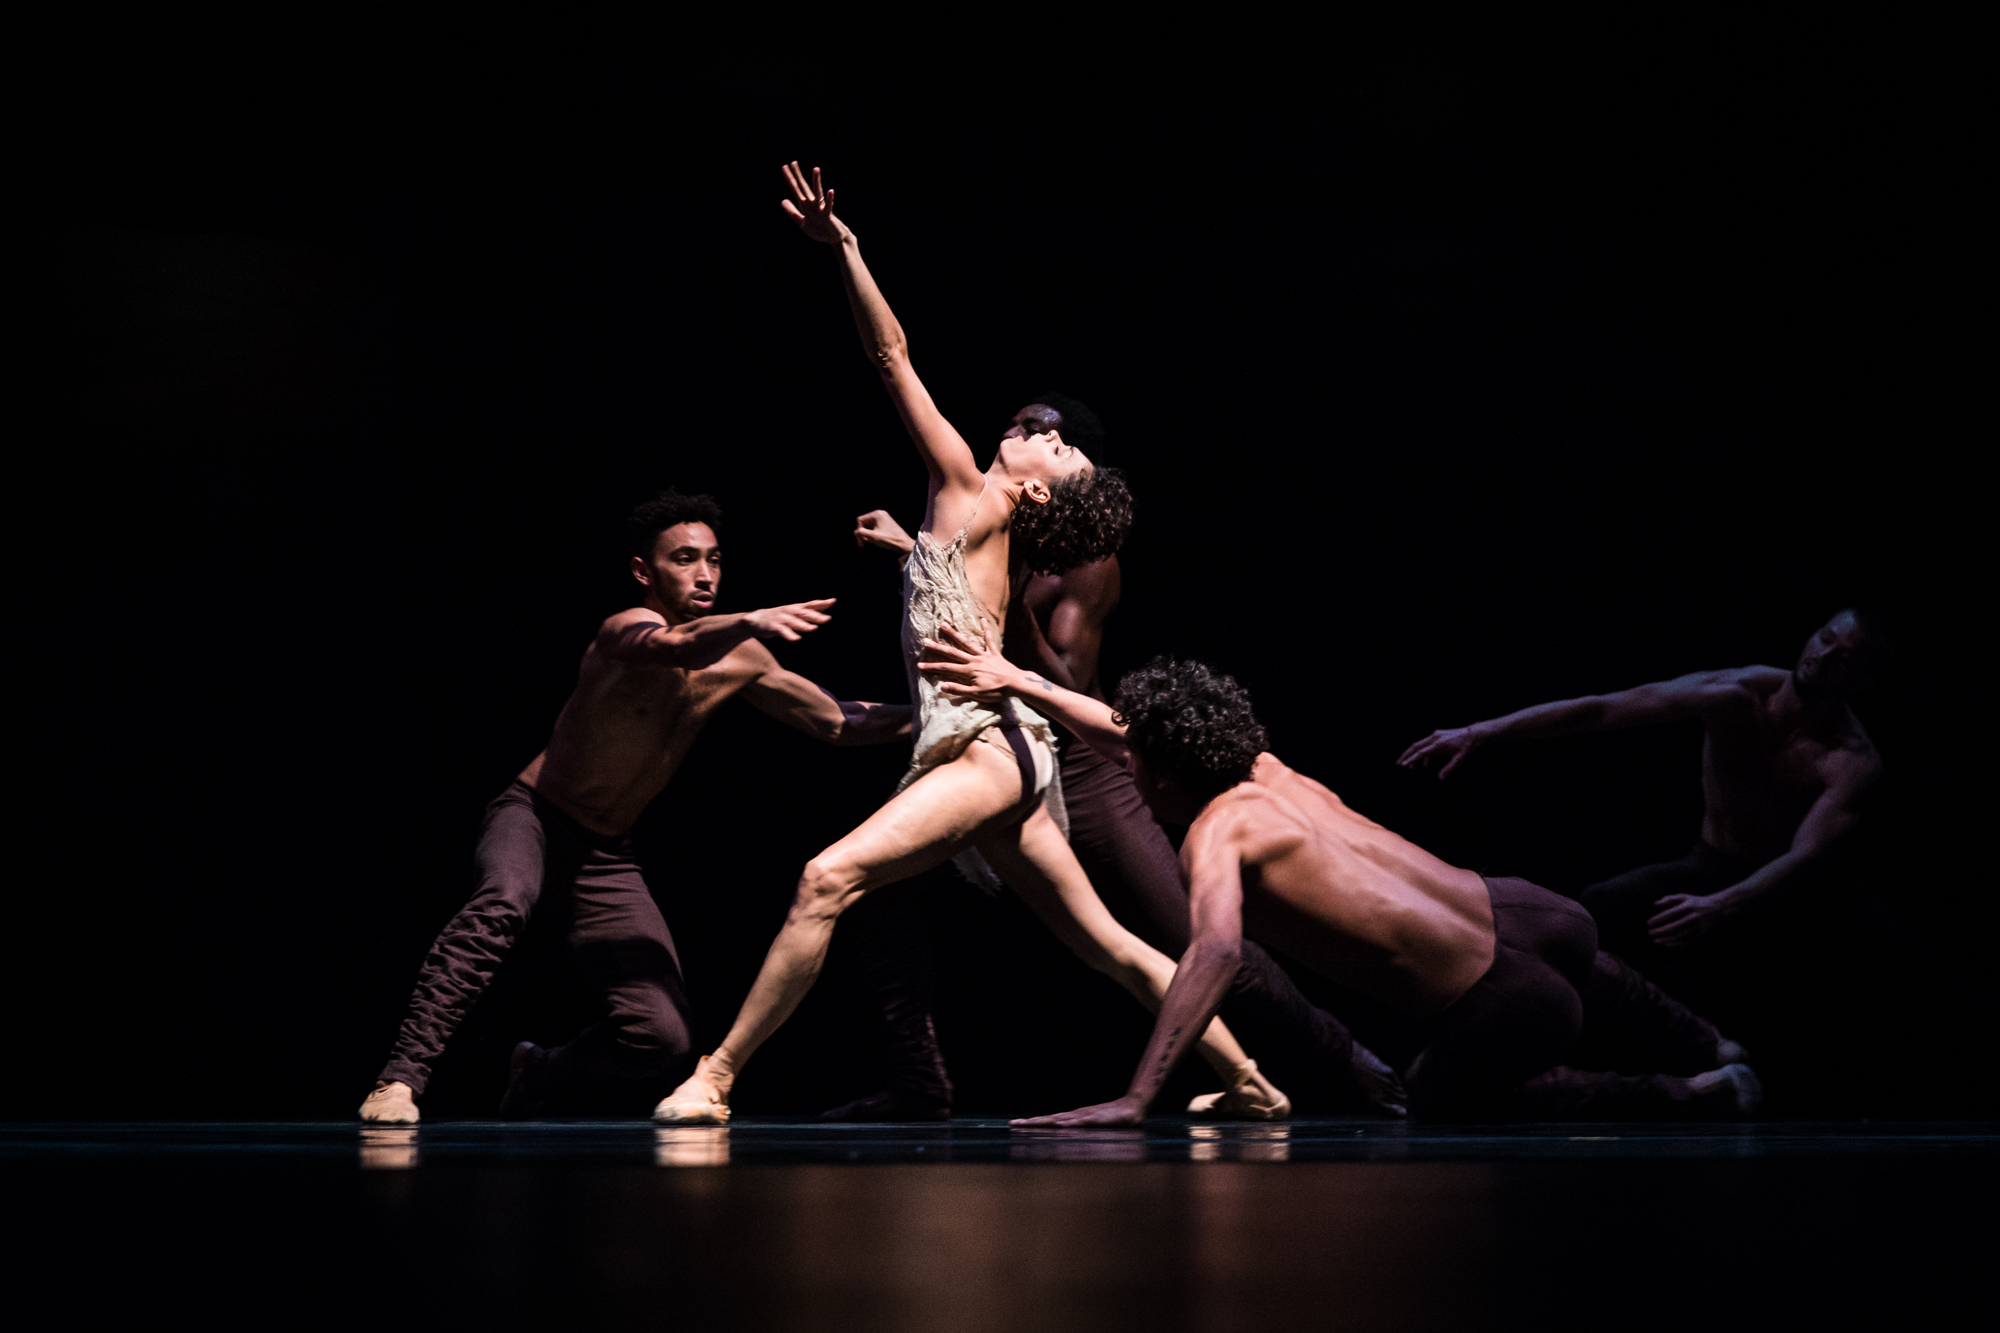 Alonzo King LINES Ballet company, at TEDWomen 2016 - It's About Time, October 26-28, 2016, Yerba Buena Centre for the Arts, San Francisco, California. Photo: Marla Aufmuth / TED